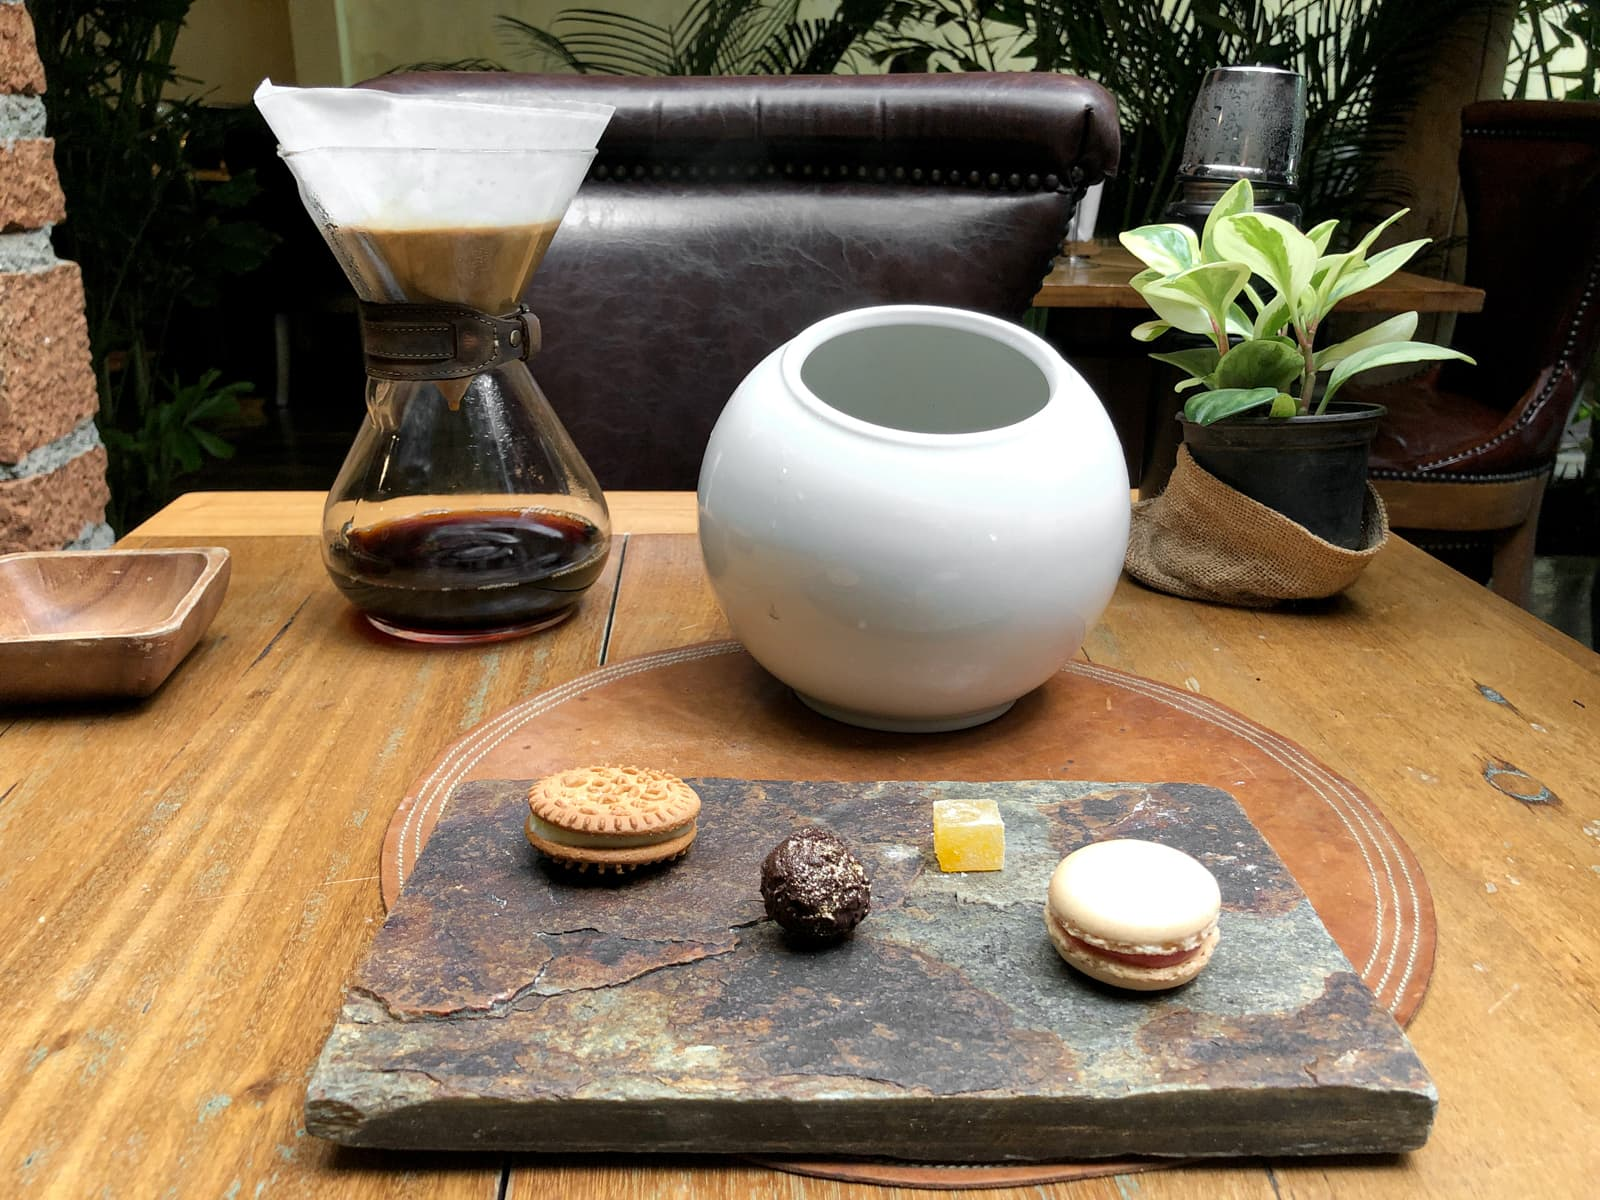 Petit fours and pour over coffee